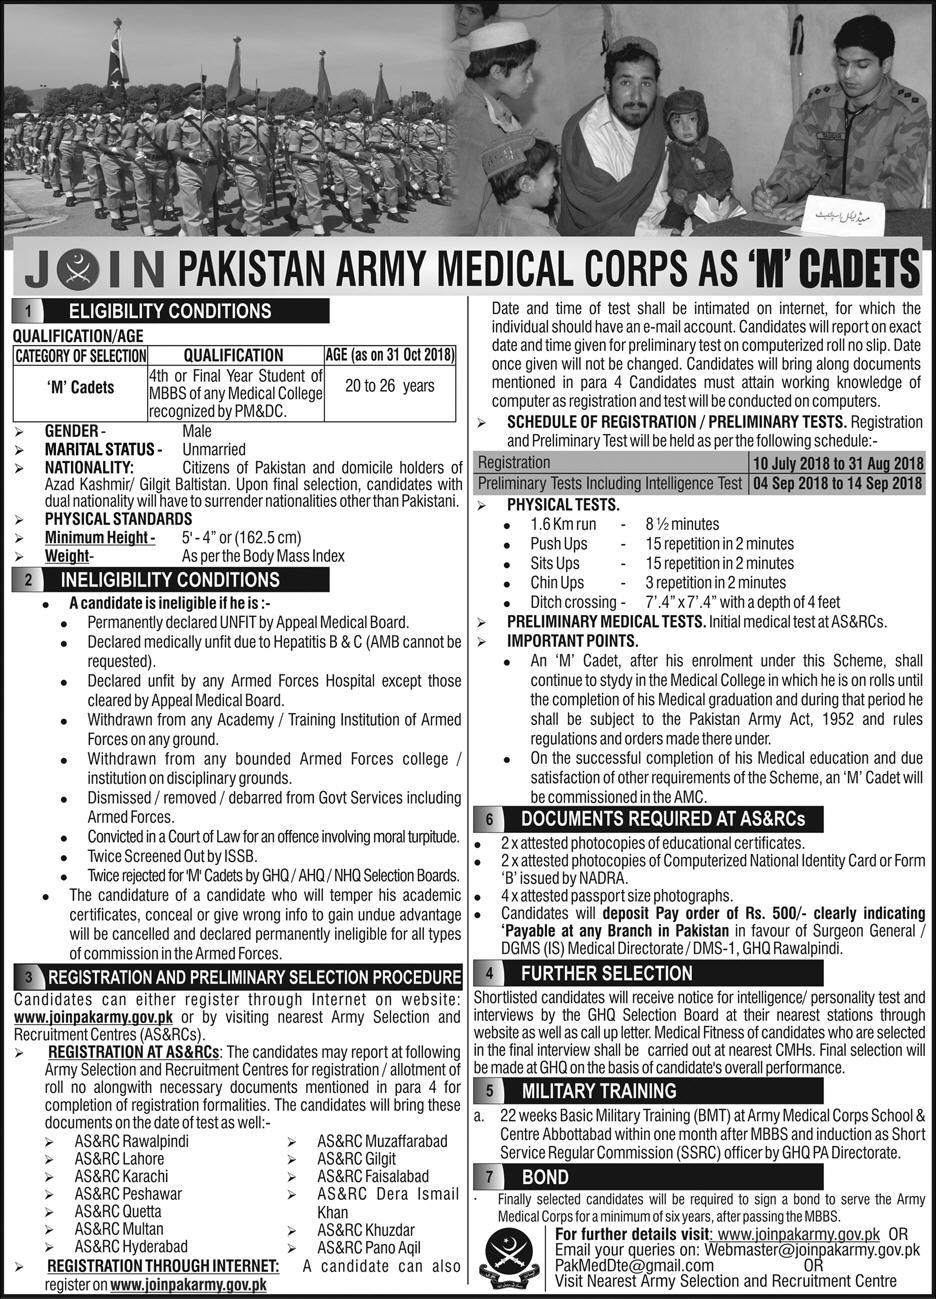 Join Pakistan Army As Medical Cadet 2018 In Army Medical Corps